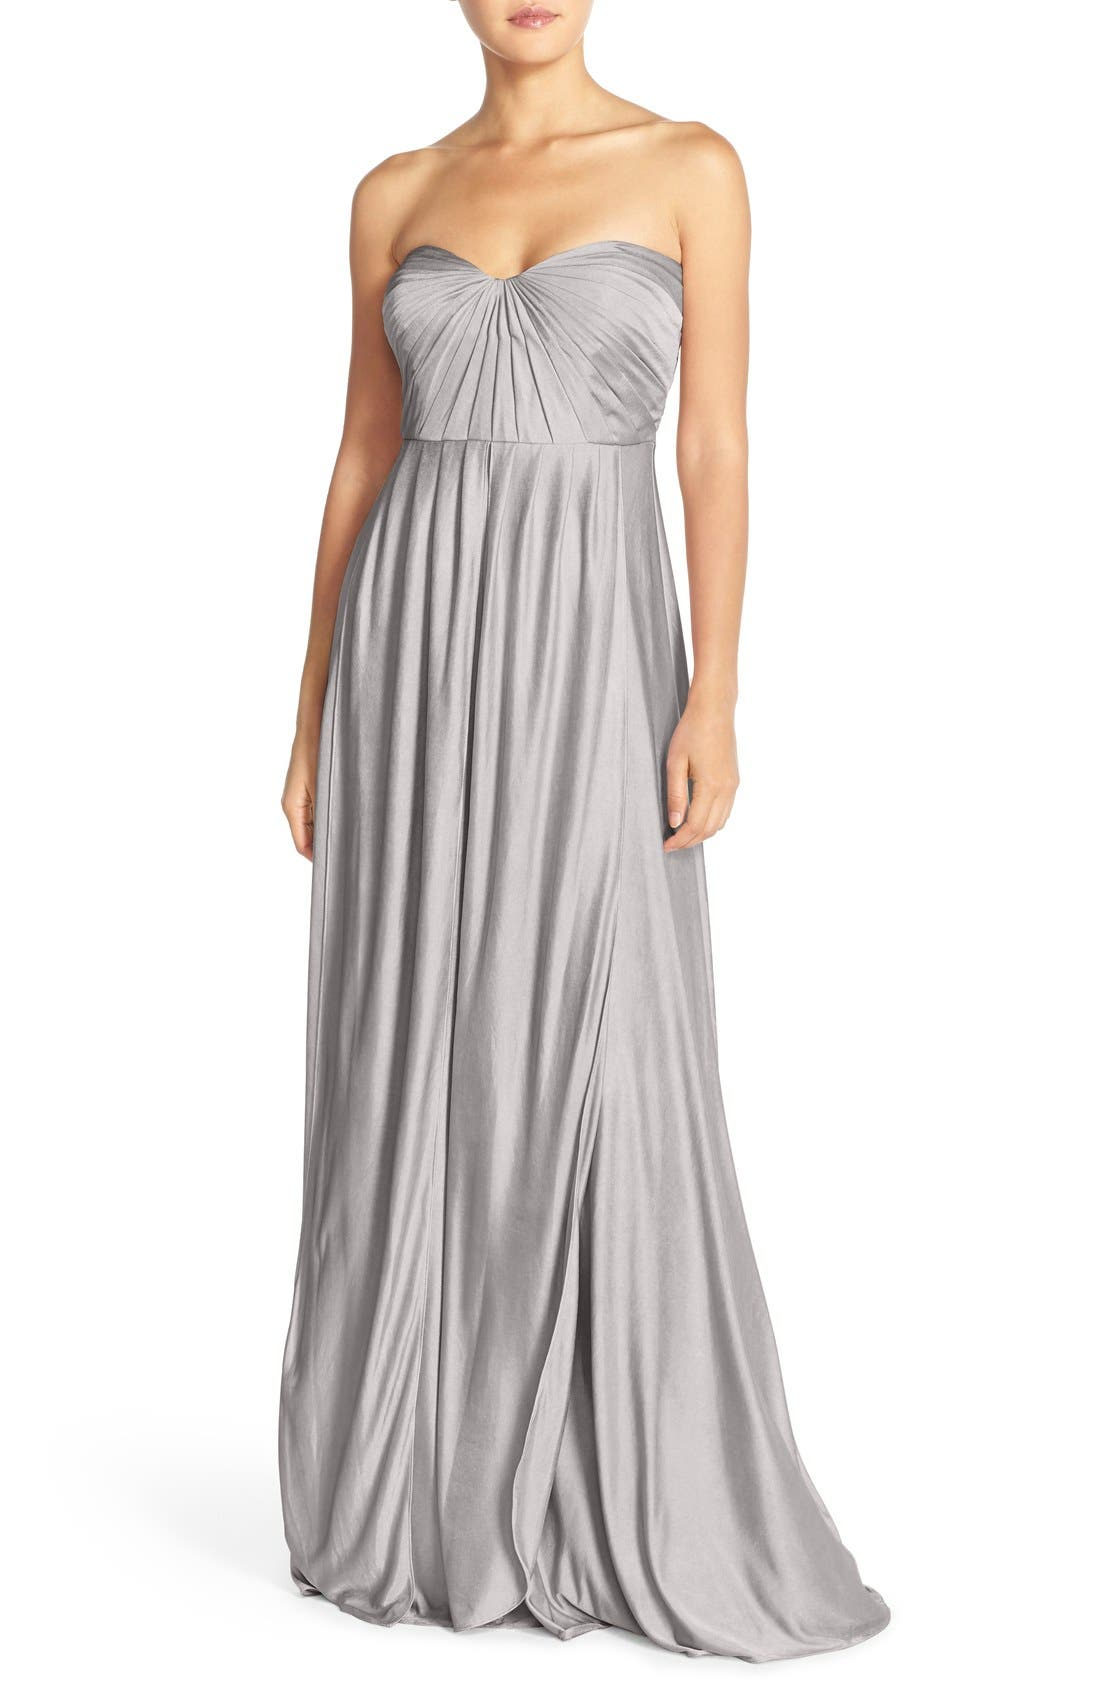 Alternate Image 1 Selected - Jenny Yoo 'Demi' Convertible Strapless Pleat Jersey Gown